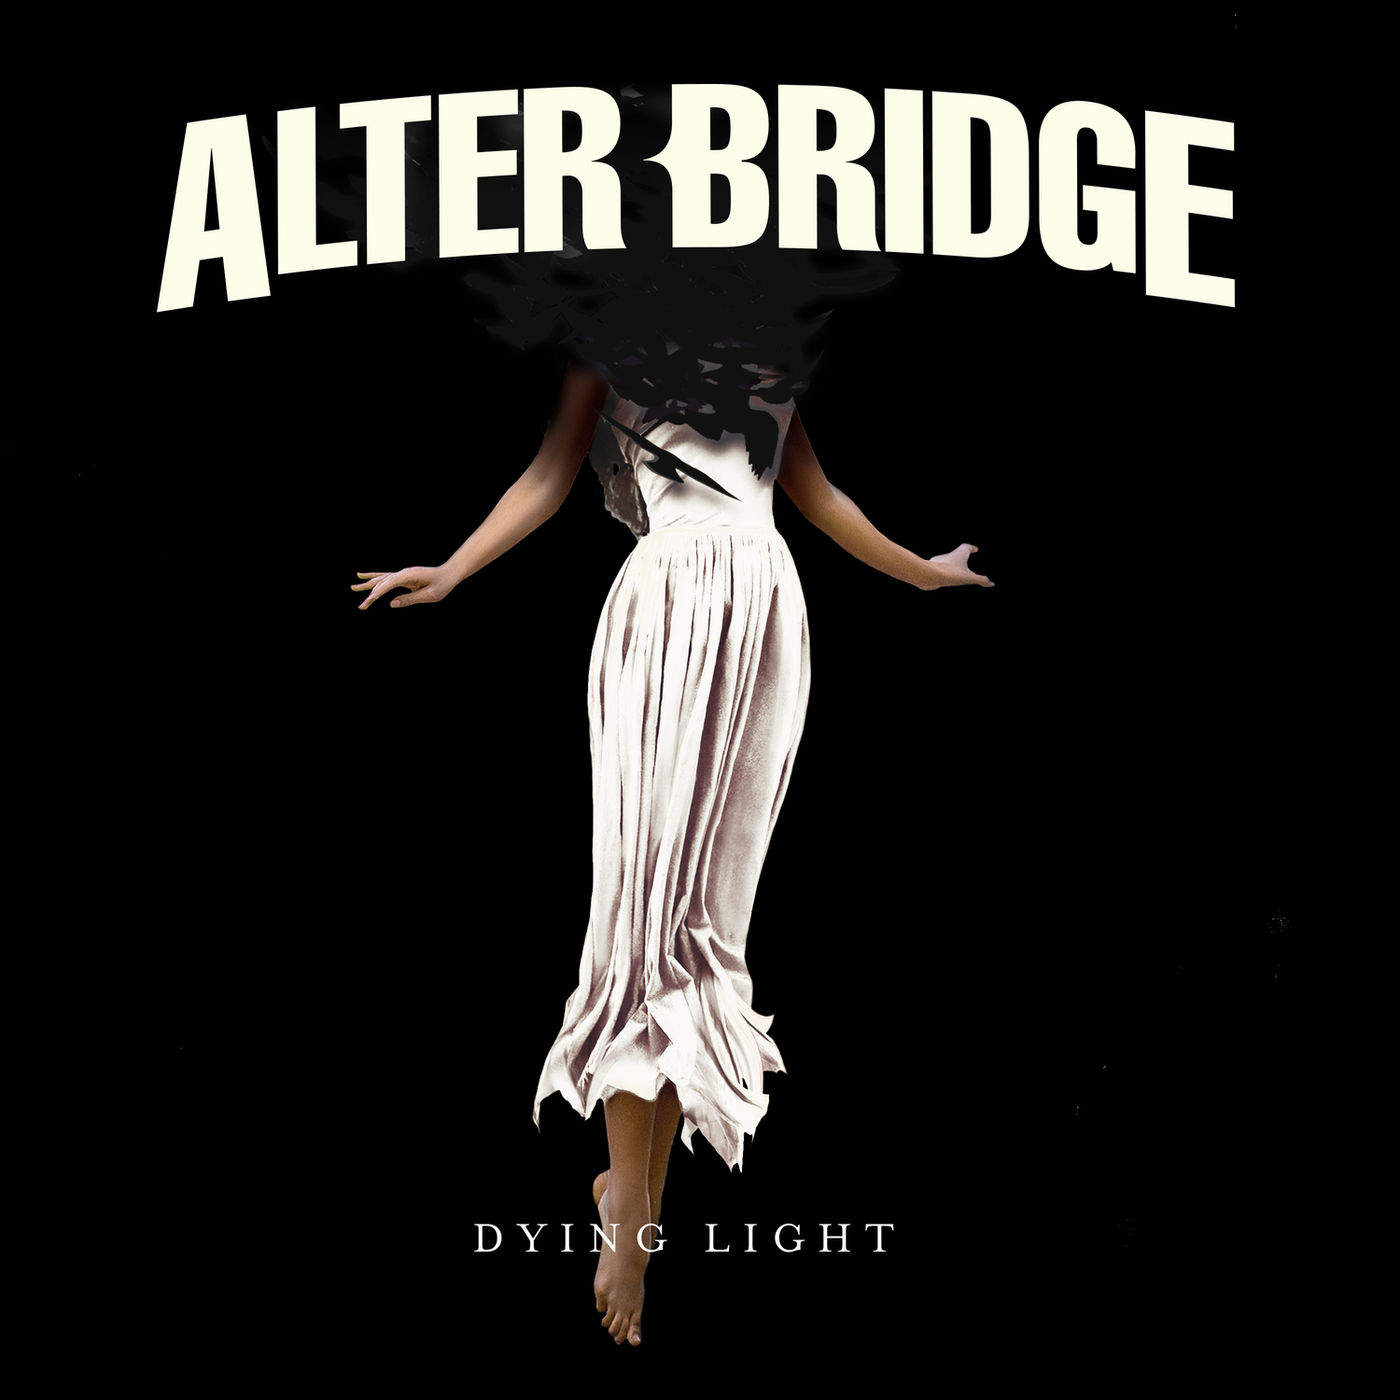 Alter Bridge - Dying Light [single] (2019)